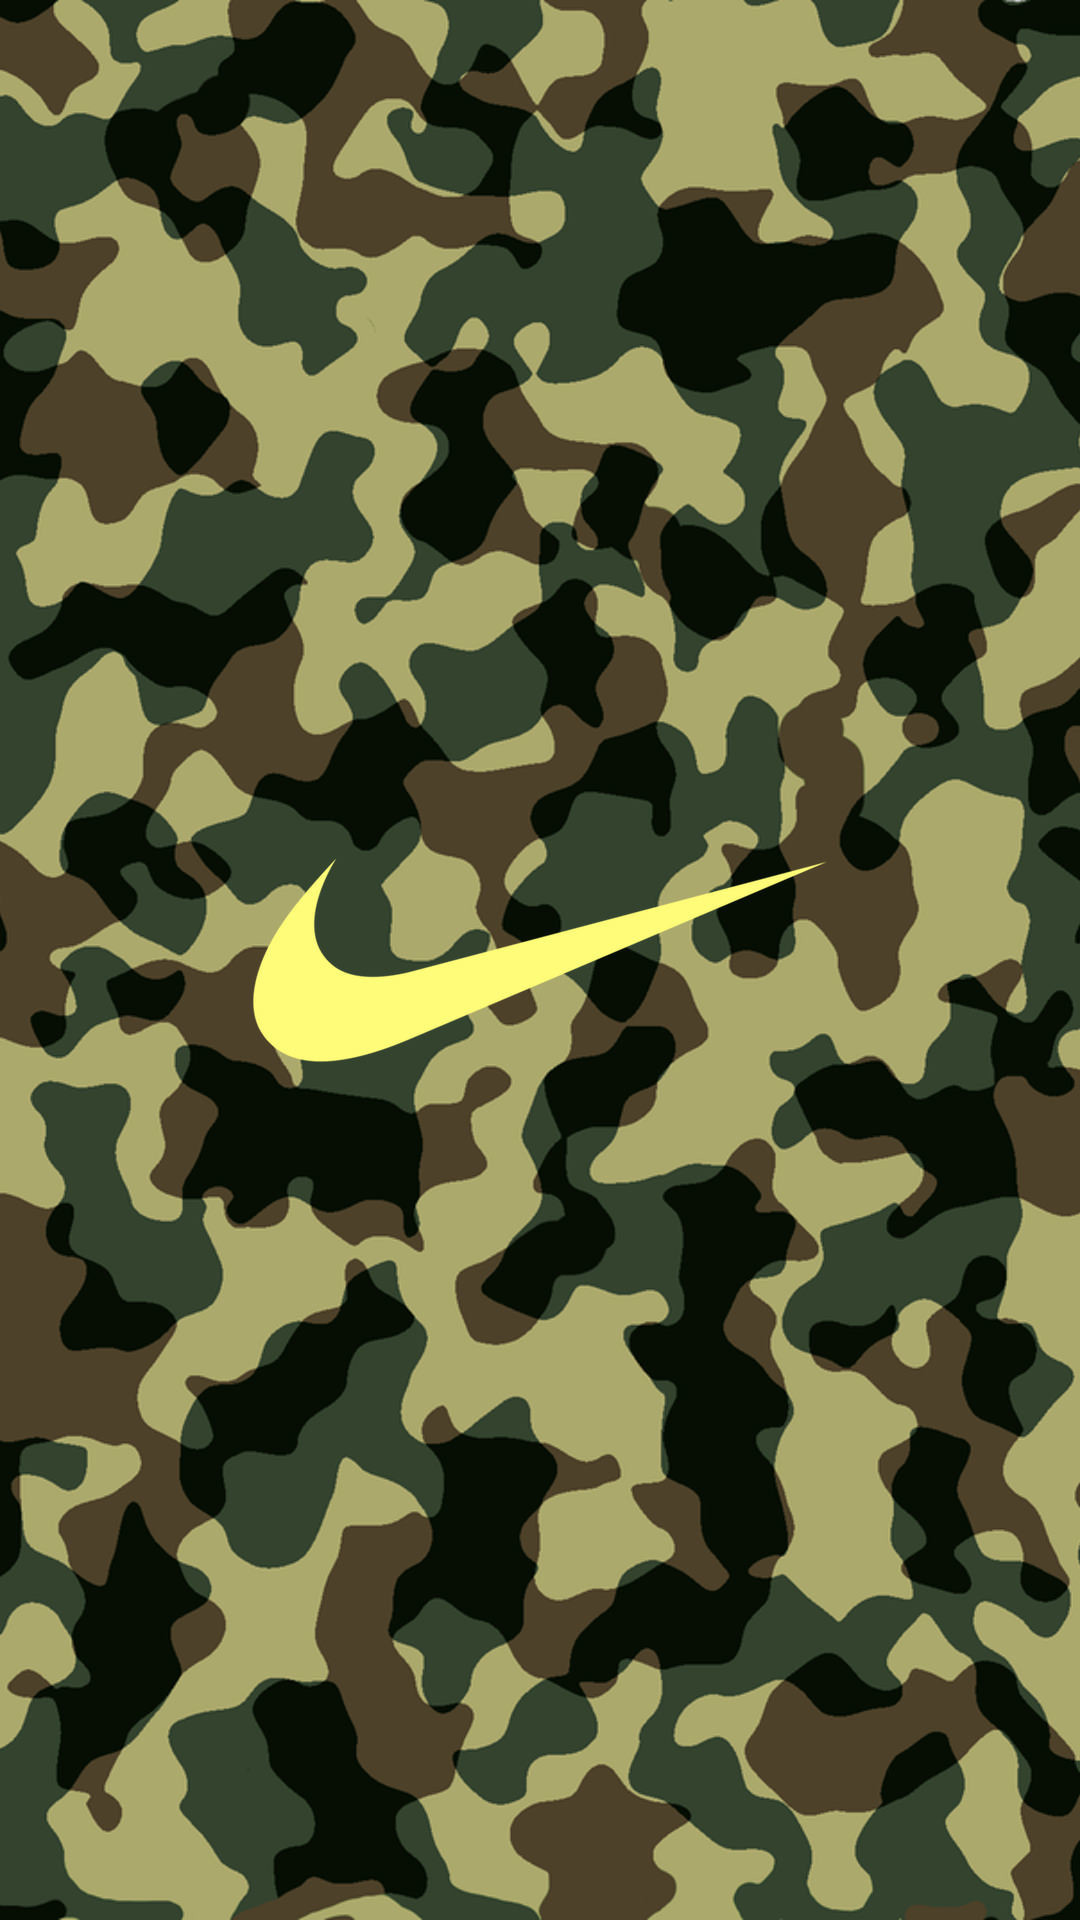 Res: 1080x1920,  NIKE Logo Camouflage iPhone Wallpaper